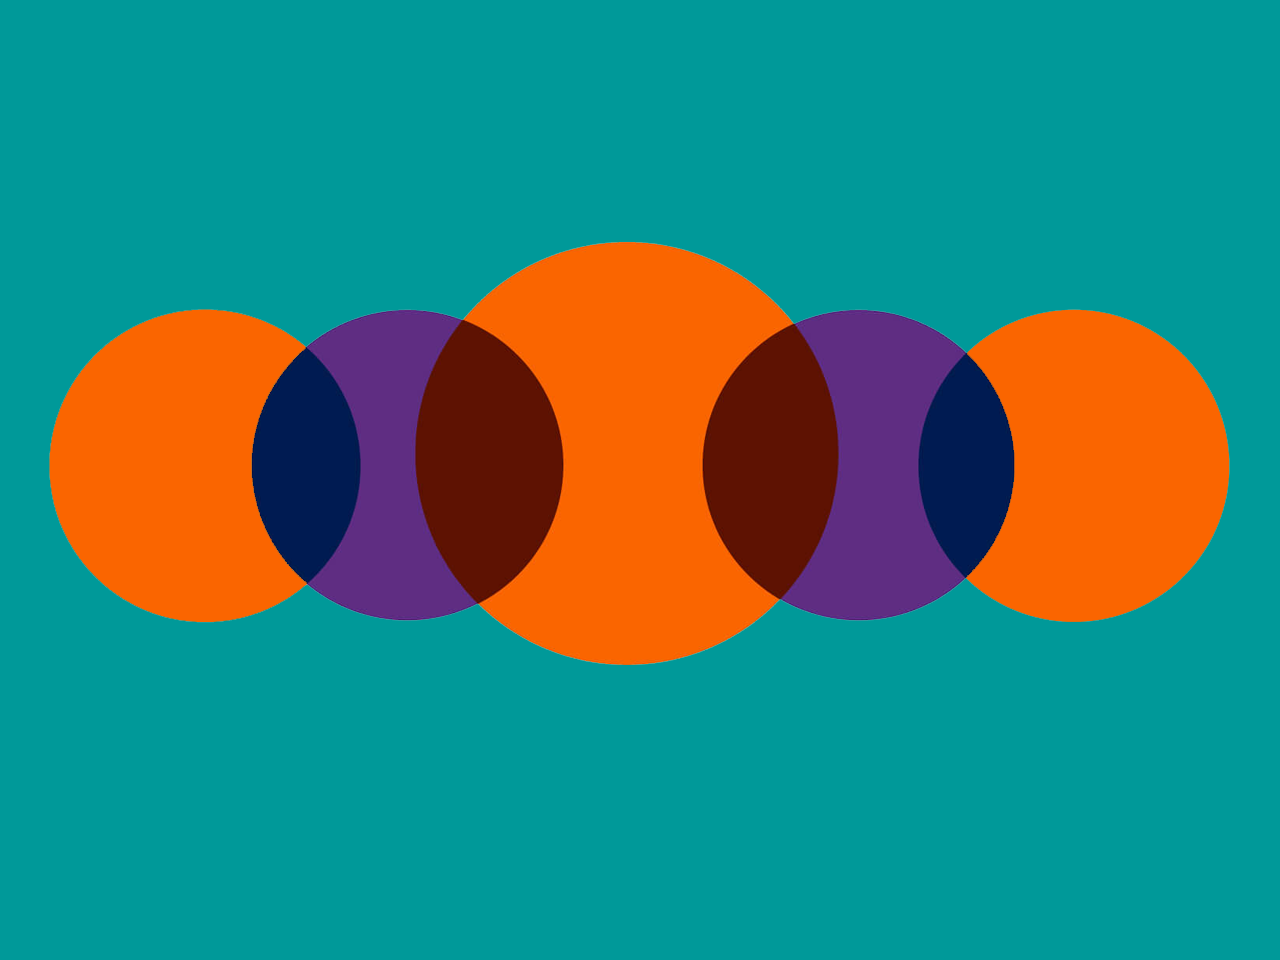 Teal background with orange and purple overlapping circles